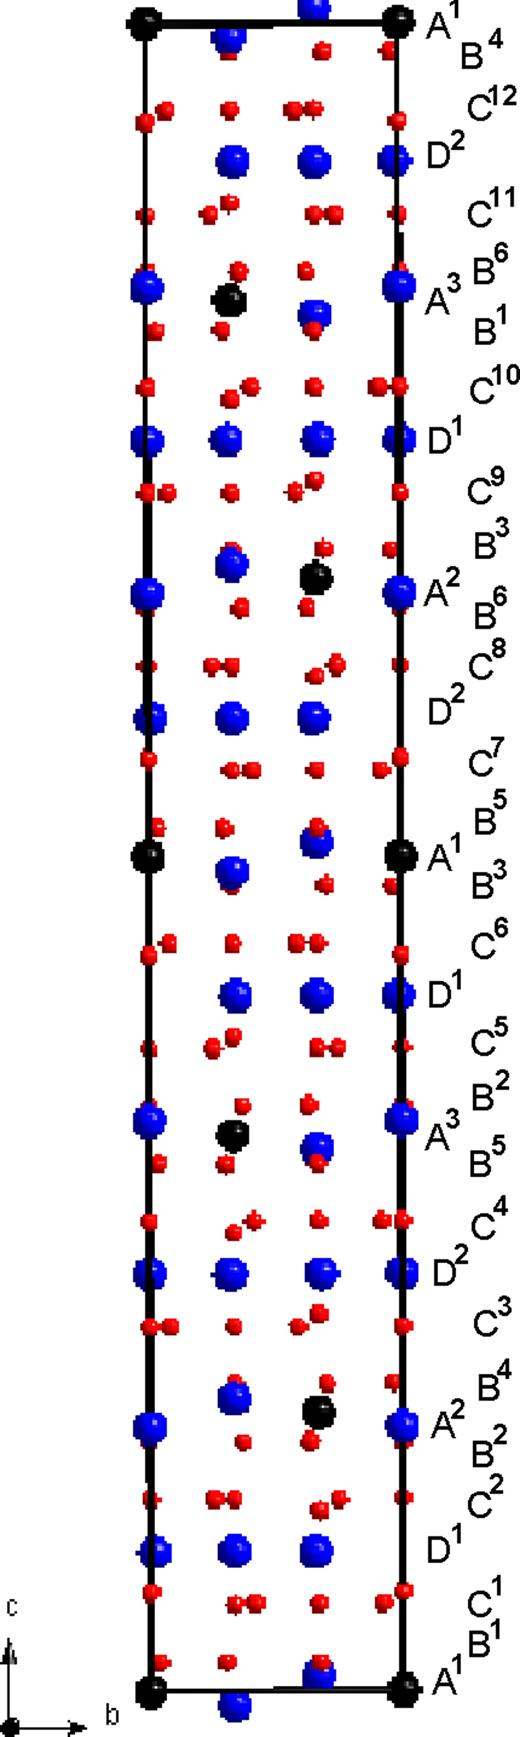 Projection of the mertieite-II structure along the x axis. Sb atoms are drawn as large blue circles, As atoms as large black circles, Pd atoms as small red circles.